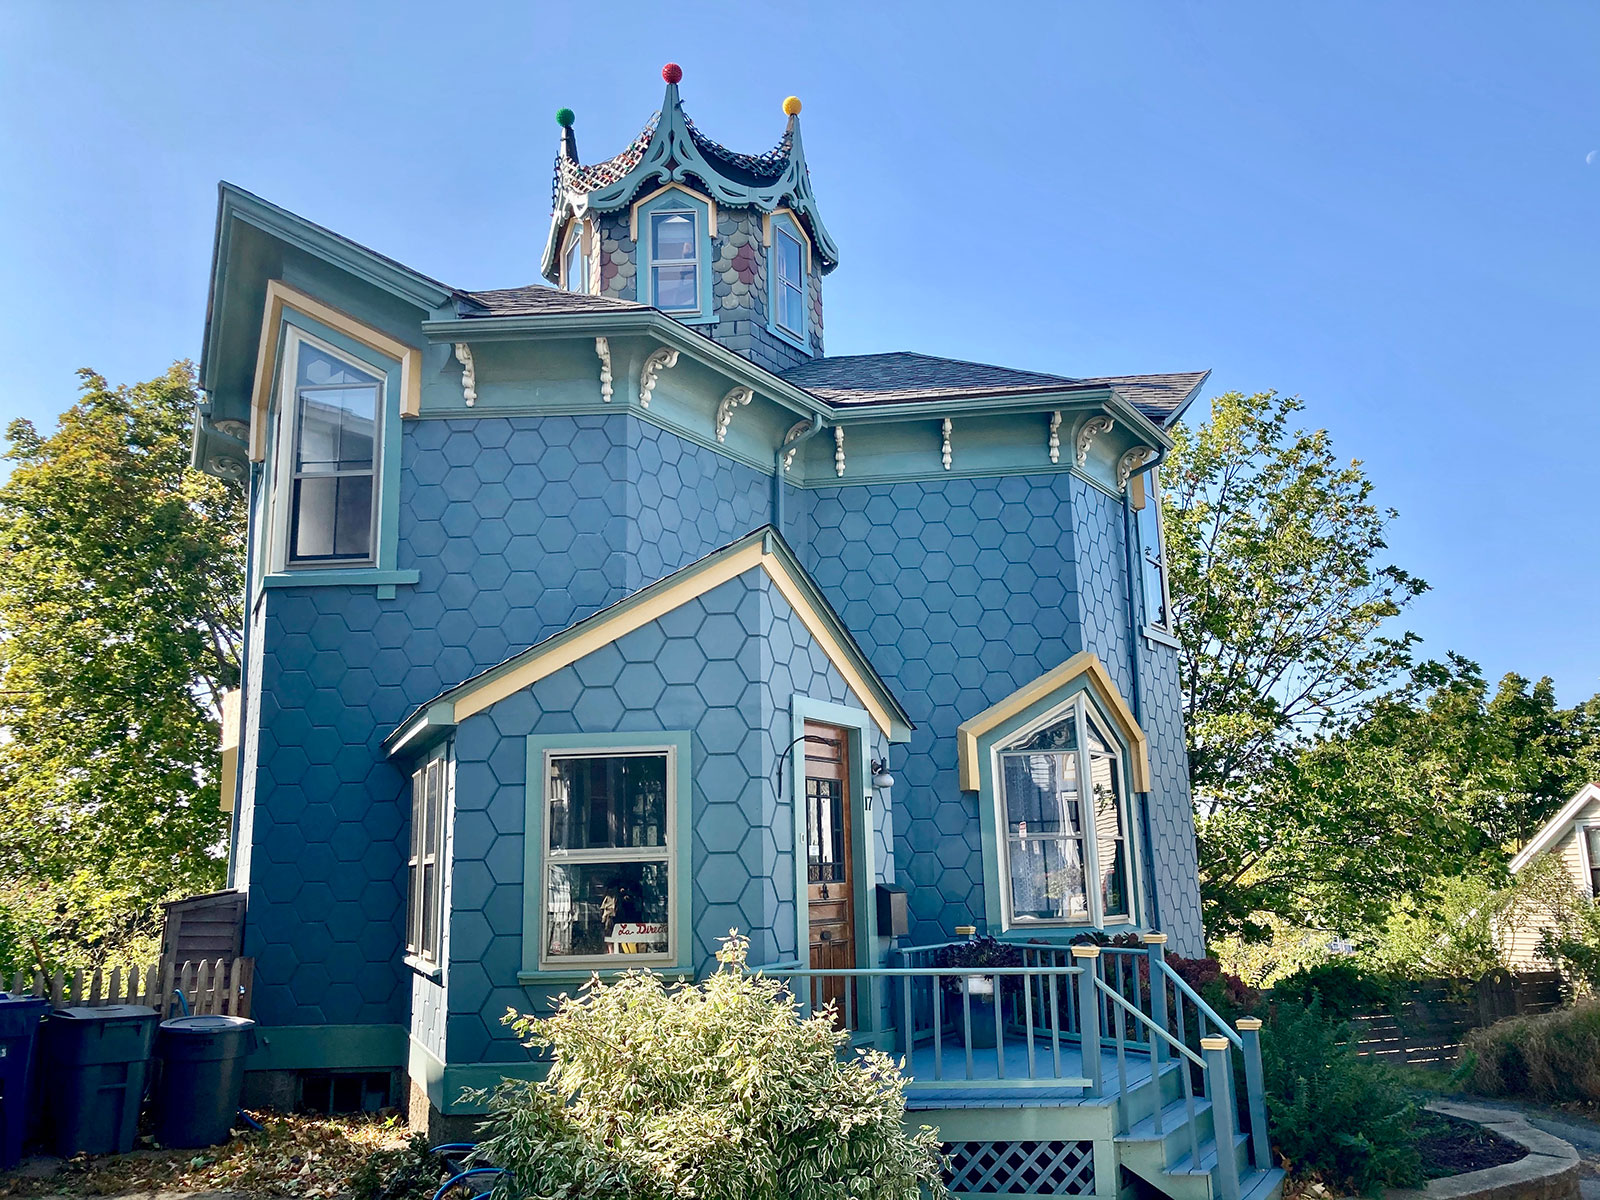 The Blue Dodecagonal House – a National Historic Landmark